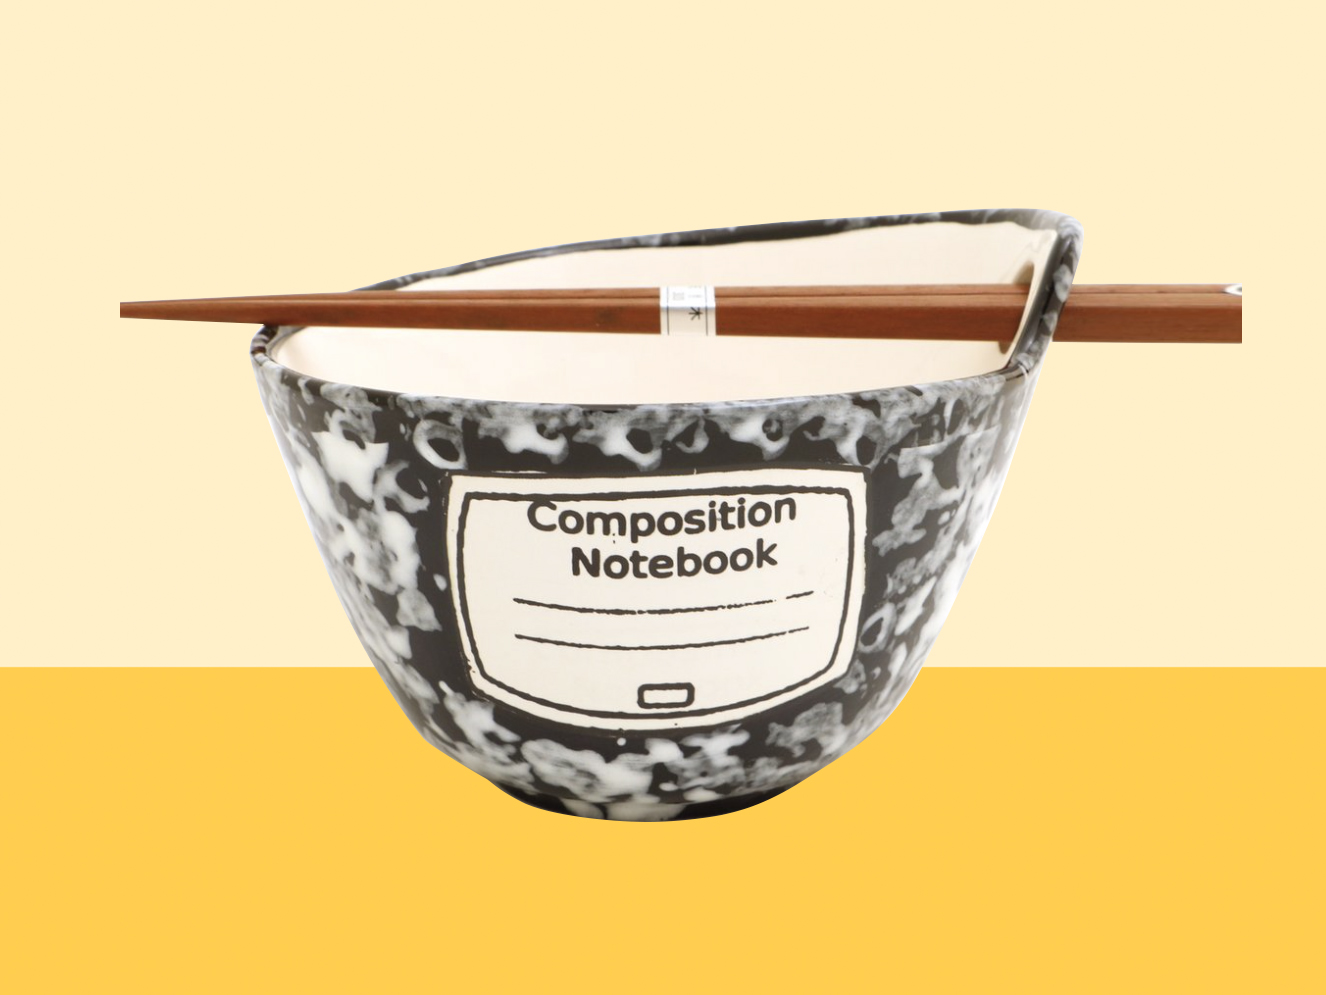 high-school-graduation-gifts: ramen bowl